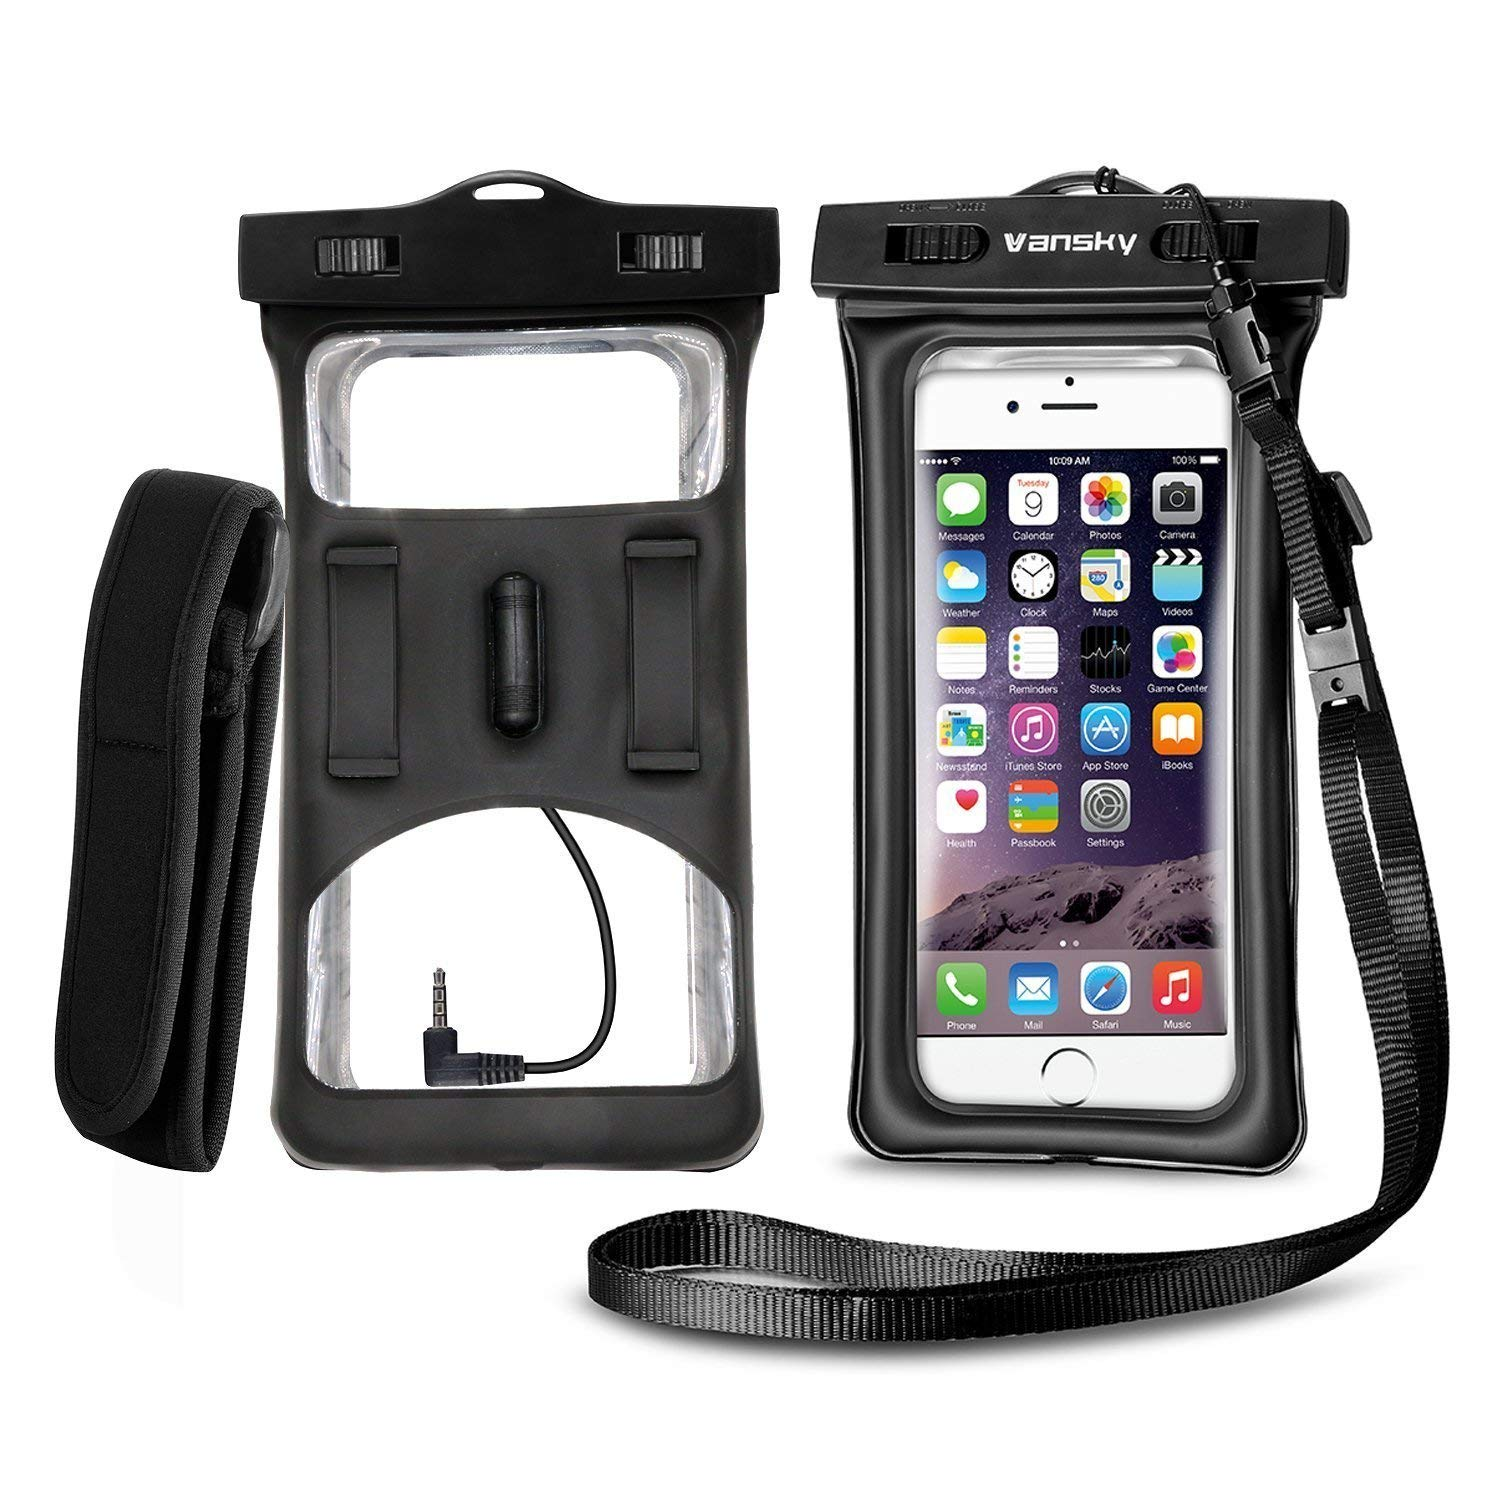 Vansky Floatable Waterproof Phone Case, Waterproof Phone Pouch Dry Bag with Armband and Audio Jack for iPhone X, 8 Plus, 8, 7 Plus, 7, 6s, 6, Andriod TPU Construction IPX8 Certified FBA_FCASE01